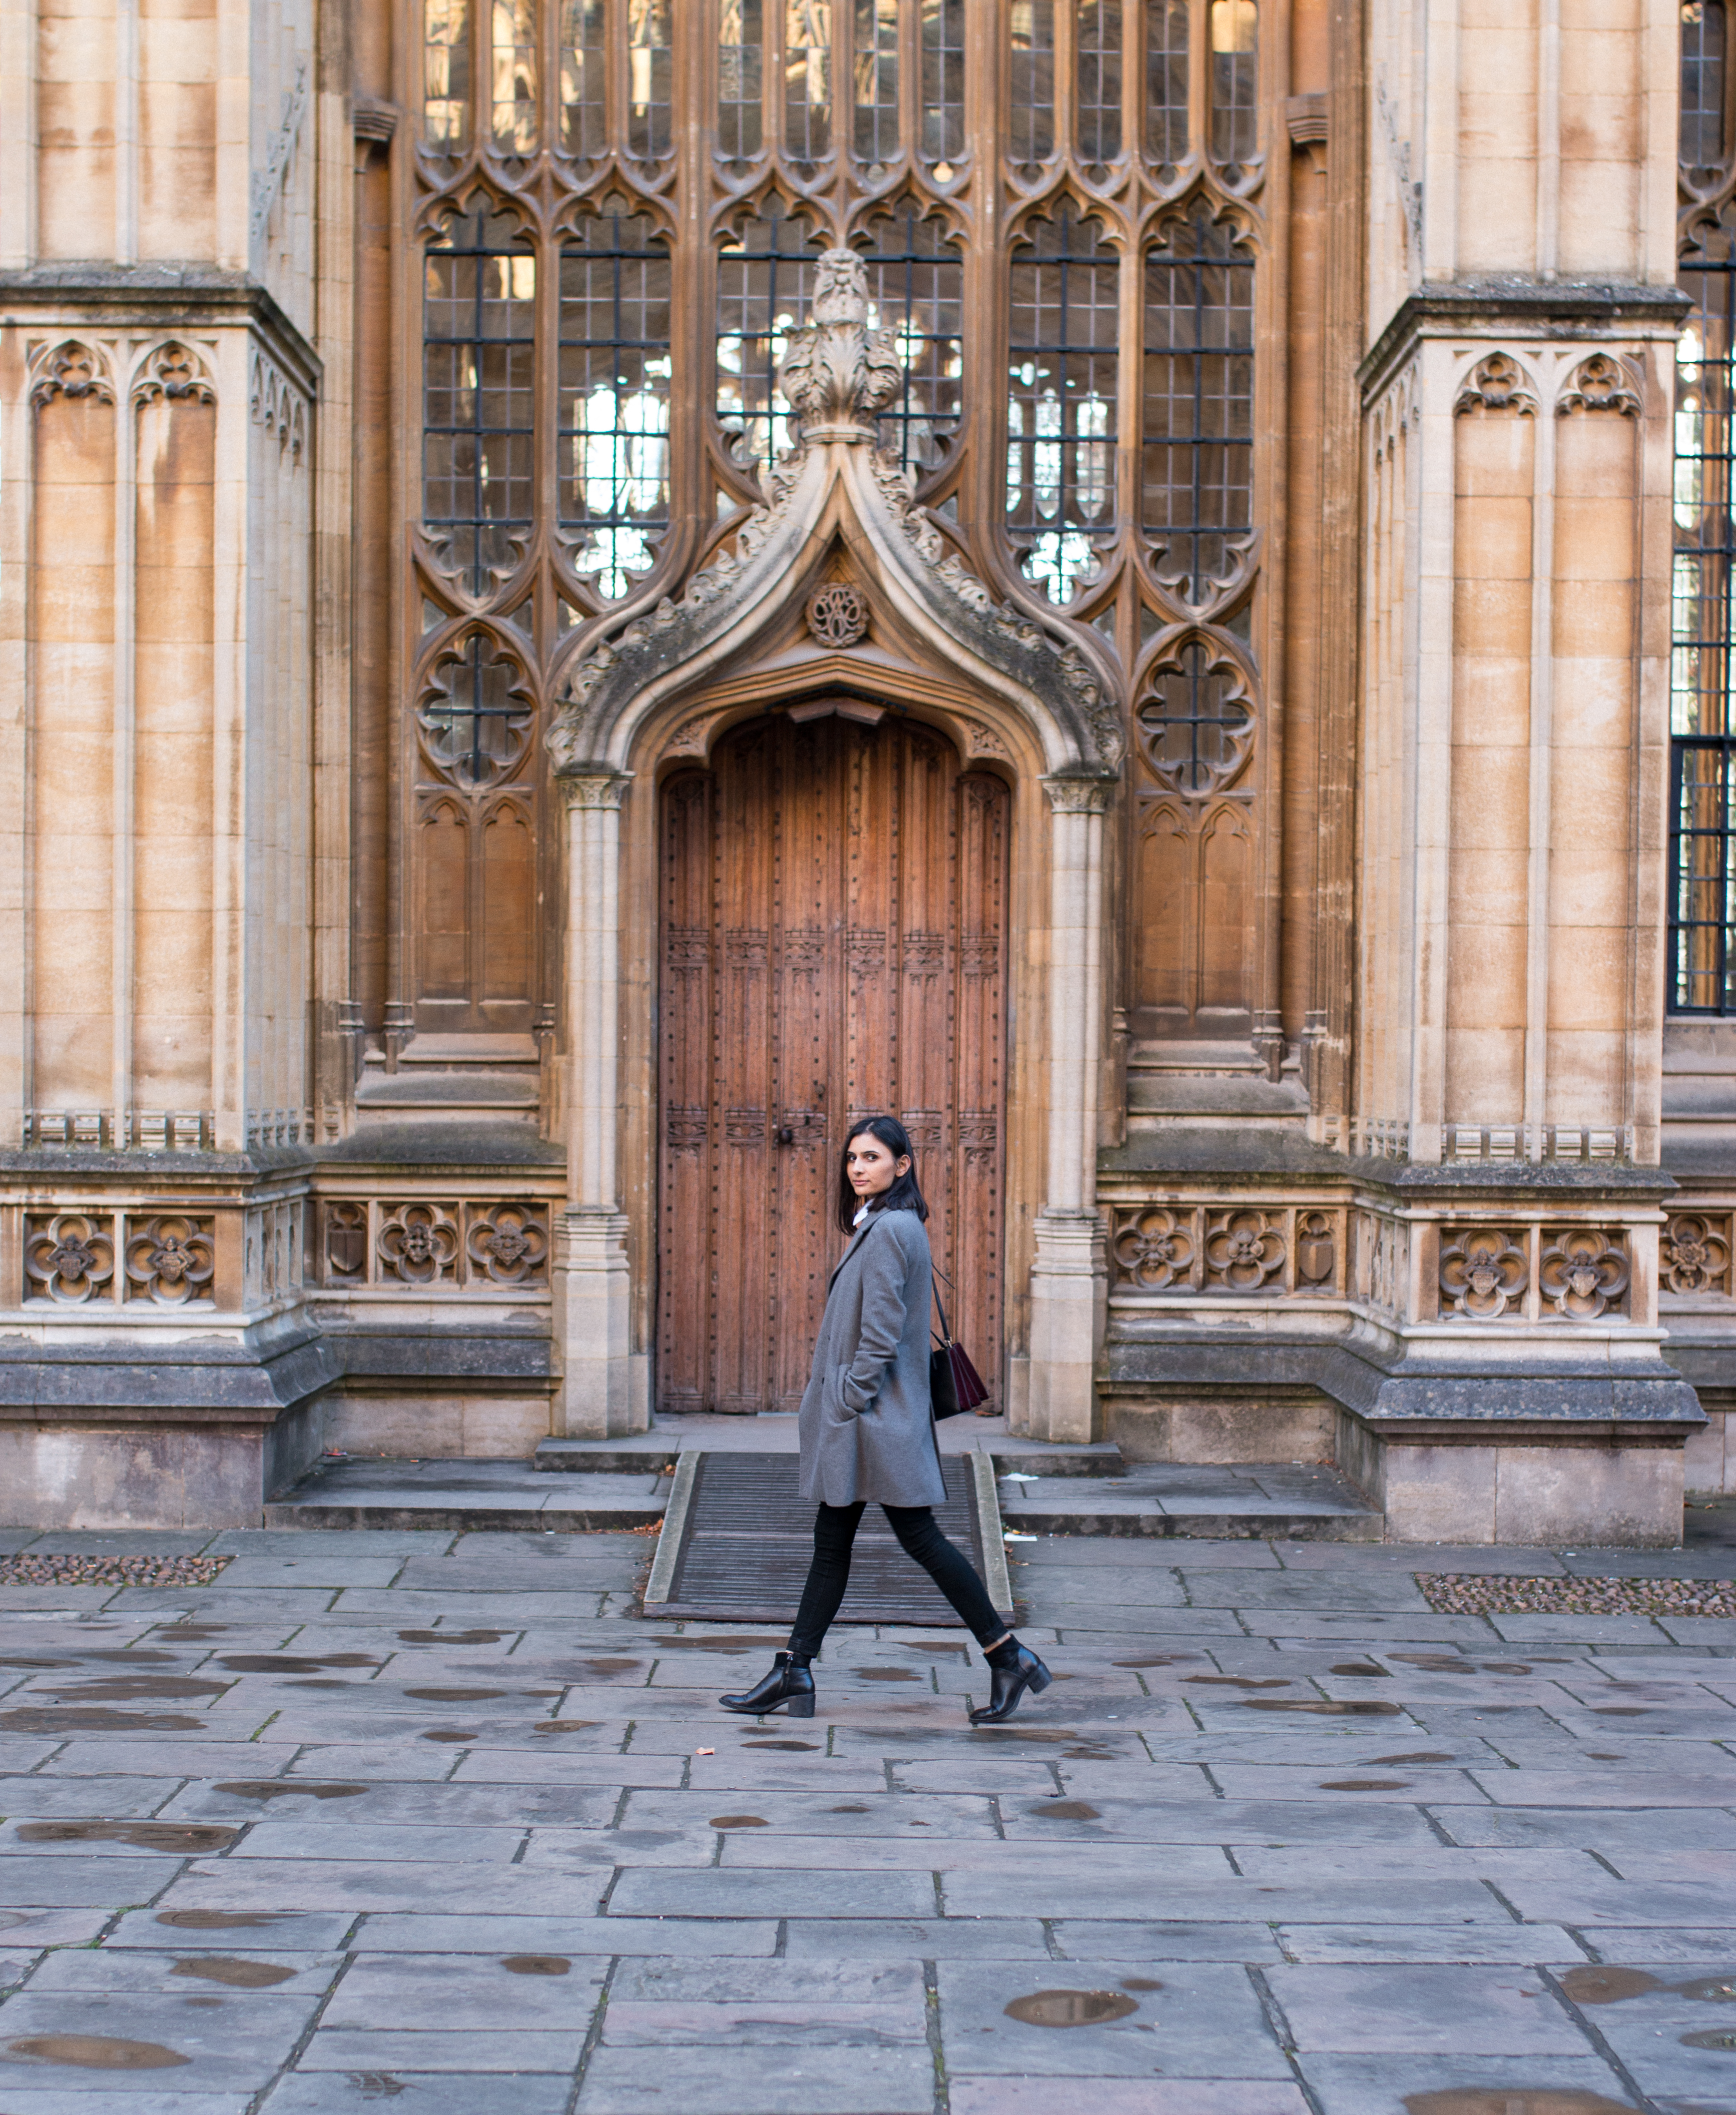 Travel Log: A Quick Trip To Oxford